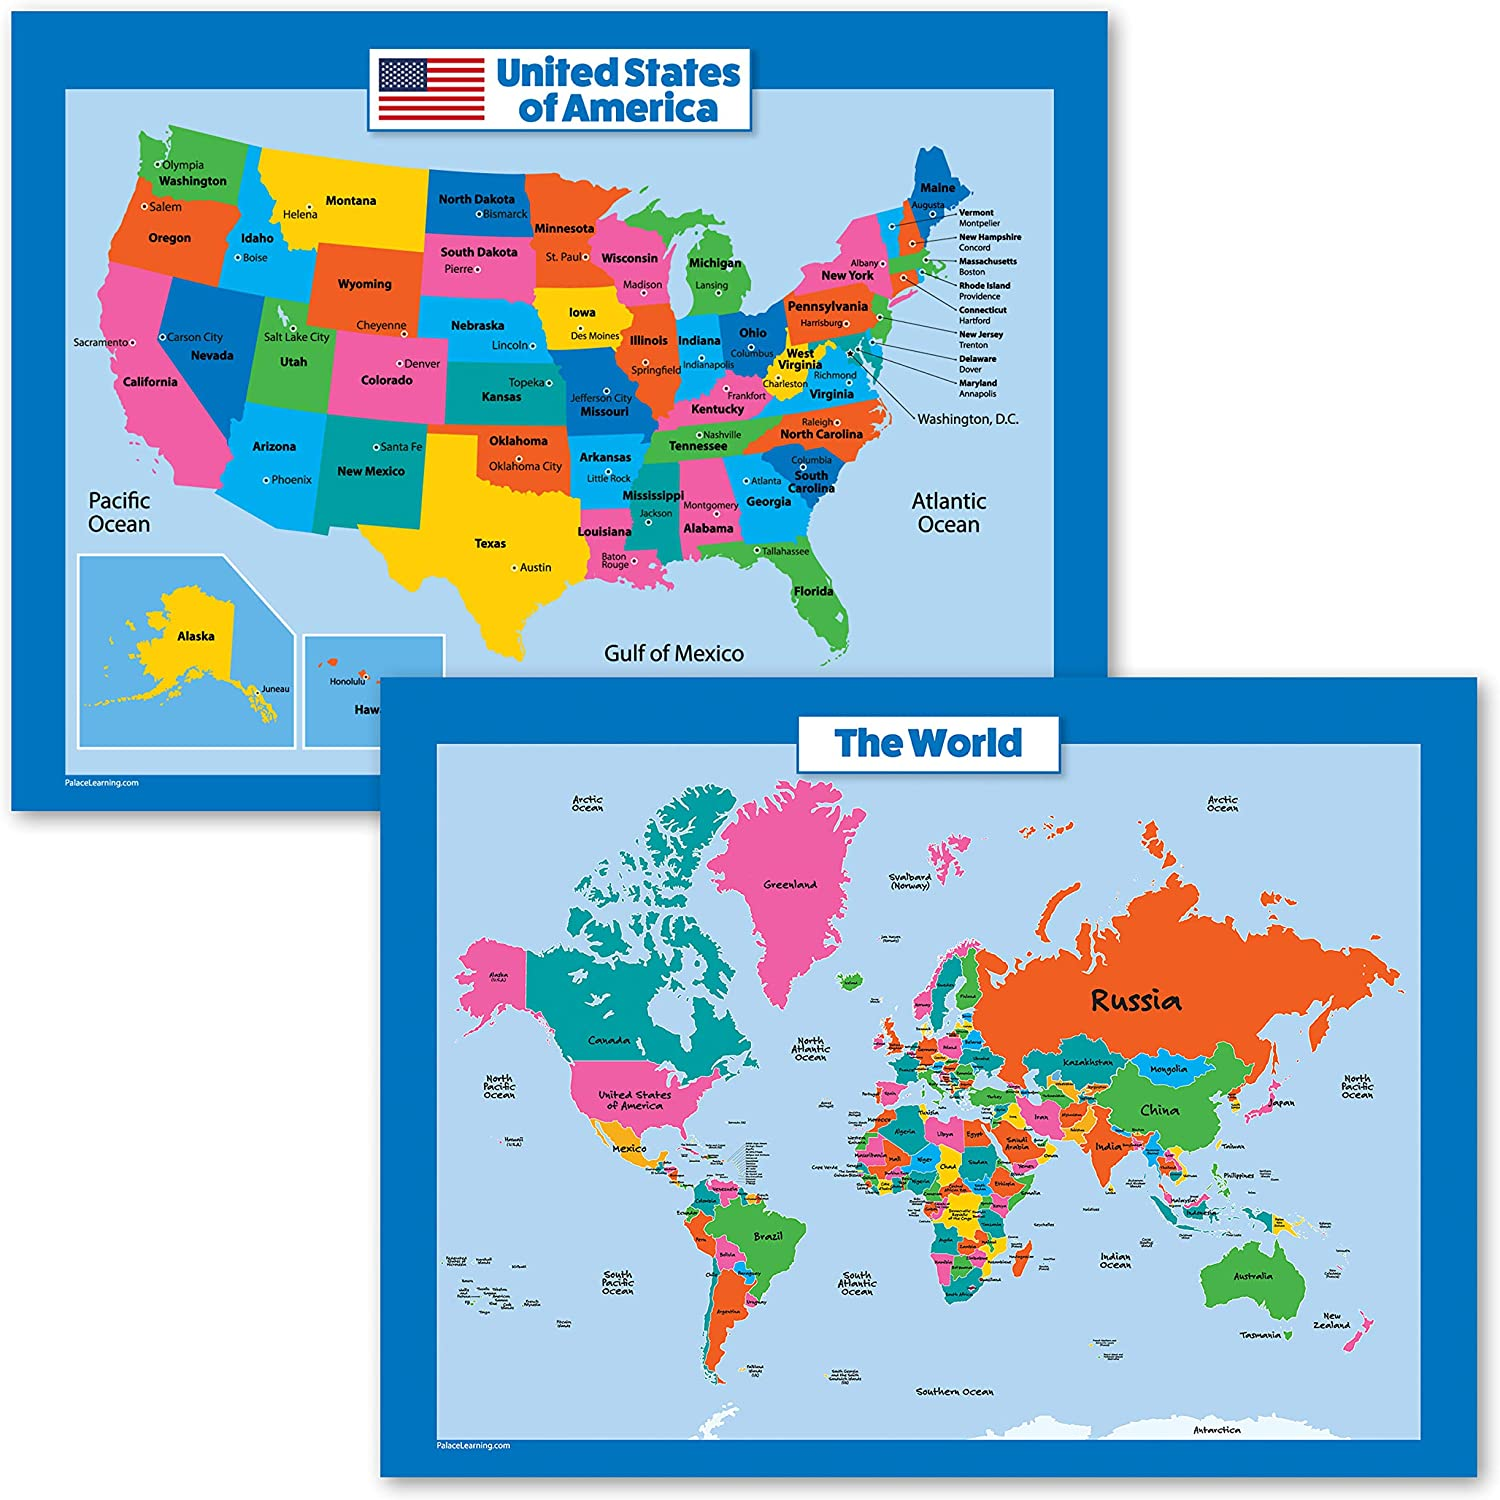 United States Map Image Amazon.com: Palace Curriculum World Map and USA Map for Kids   2